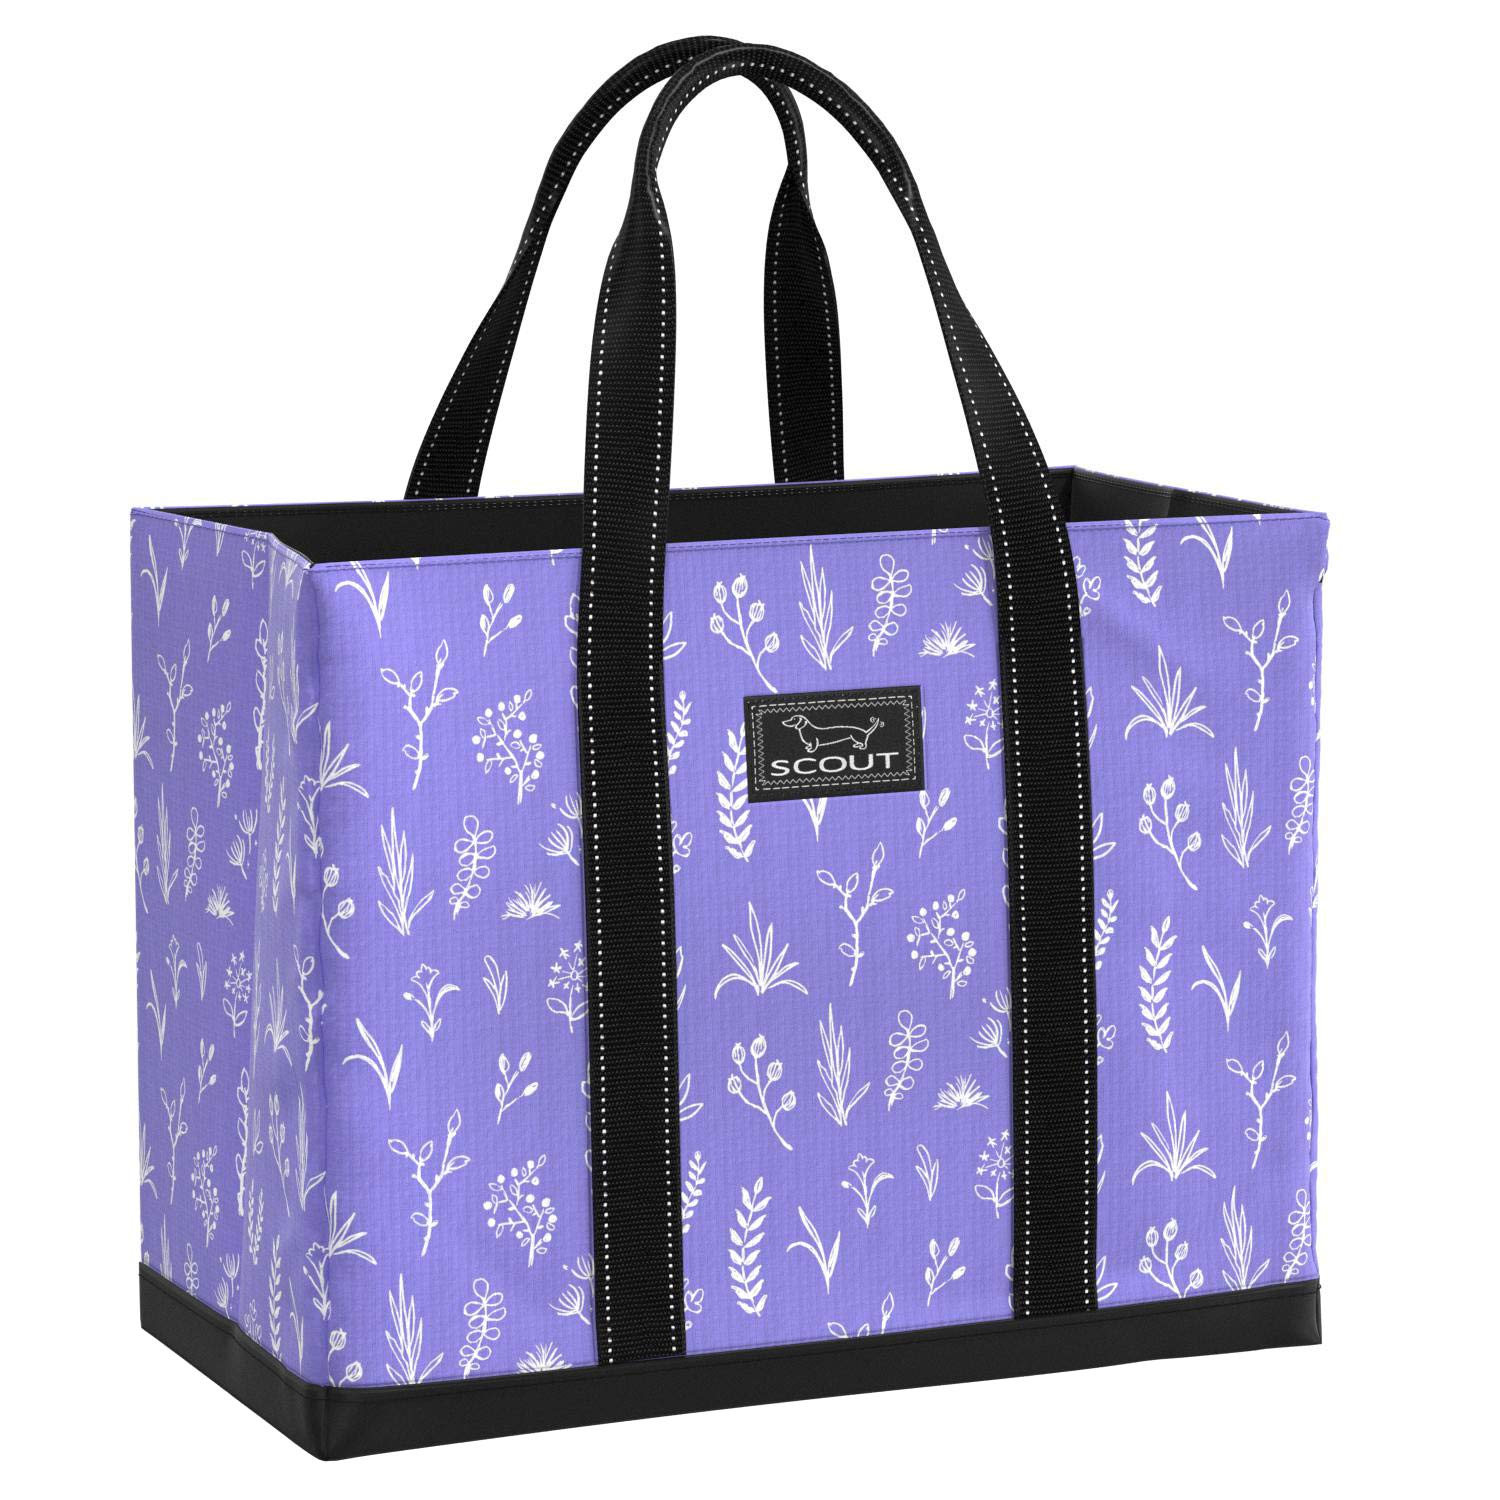 Wisteria Lane SCOUT Original DEANO Tote Bag, Water Resistant Large Tote Bag for Women (Multiple Patterns Available) (Rock The Boat)